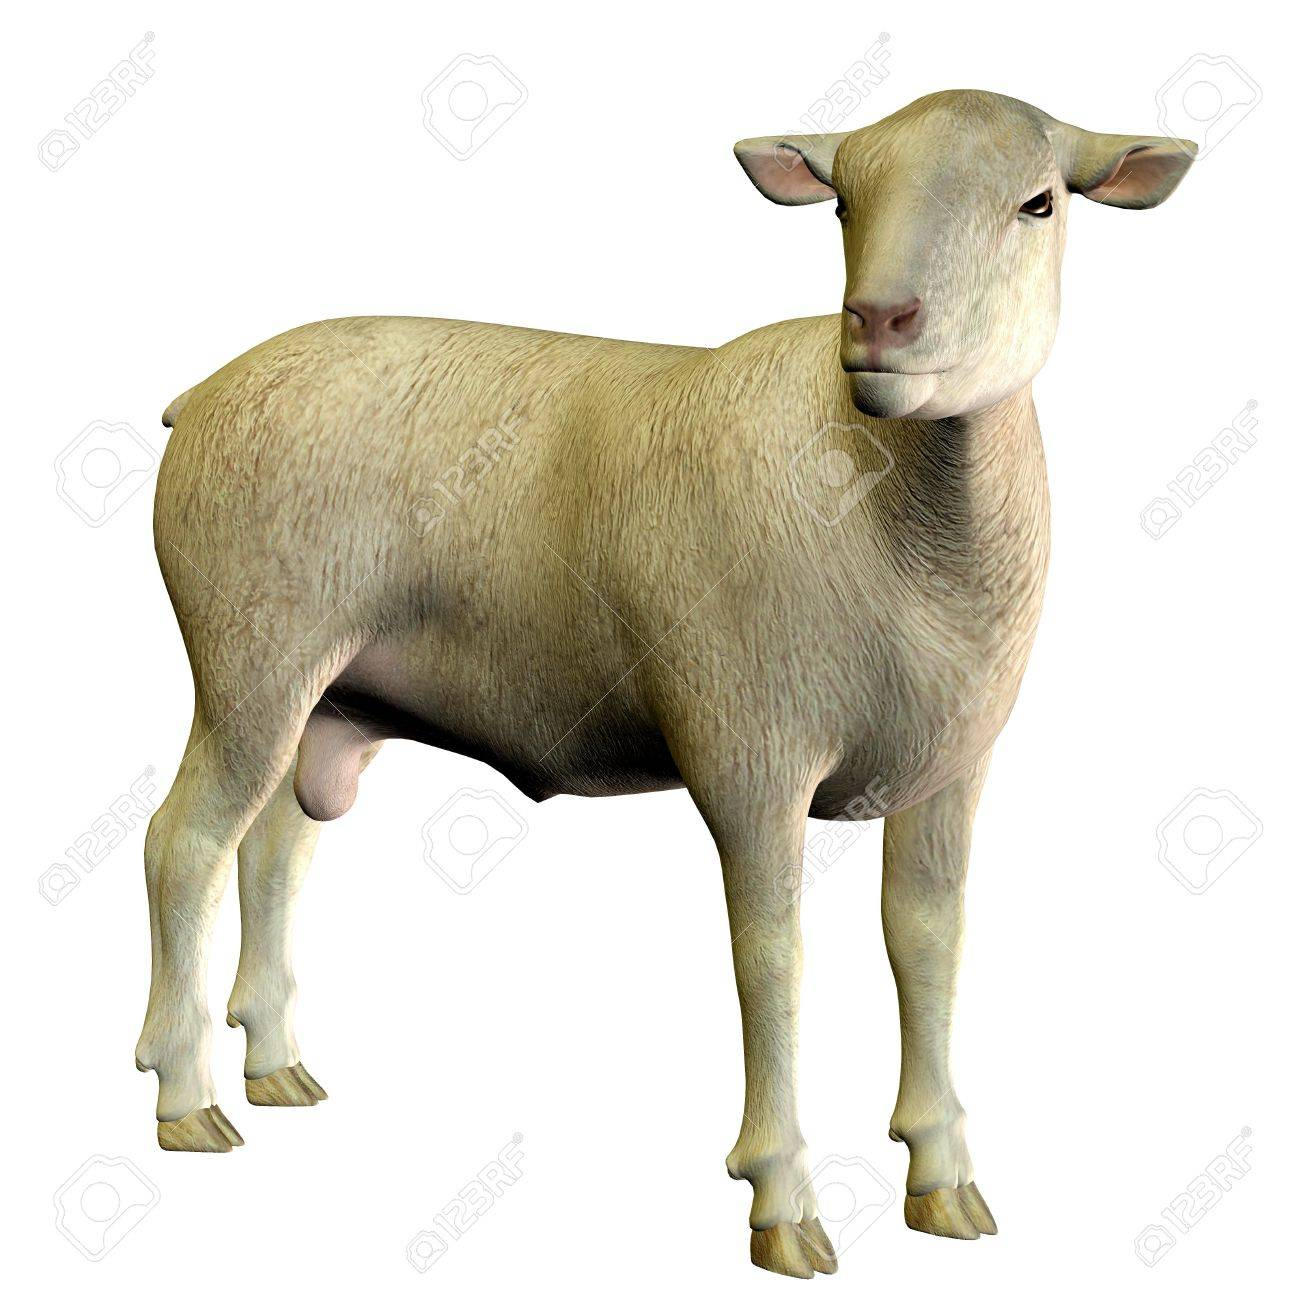 3D rendering of a standing sheep Stock Photo - 7958058